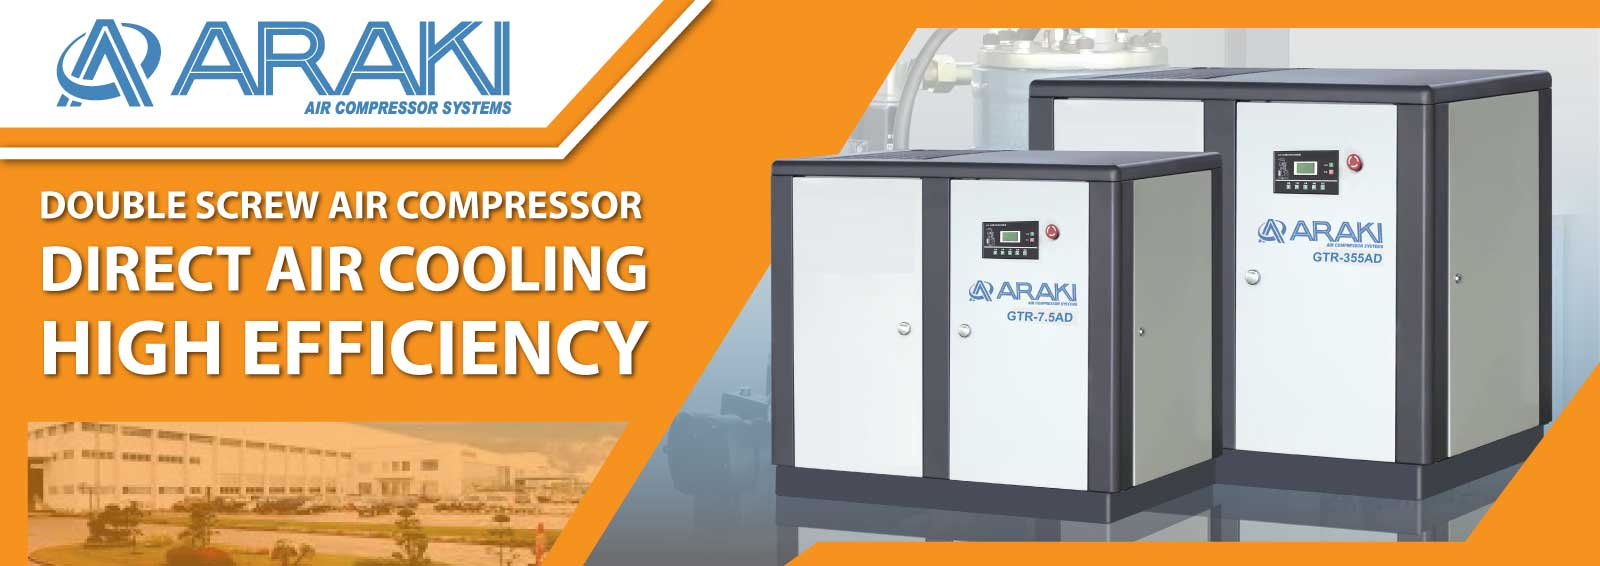 Shigemitsu Belt Air Cooling Double Screw Compressor